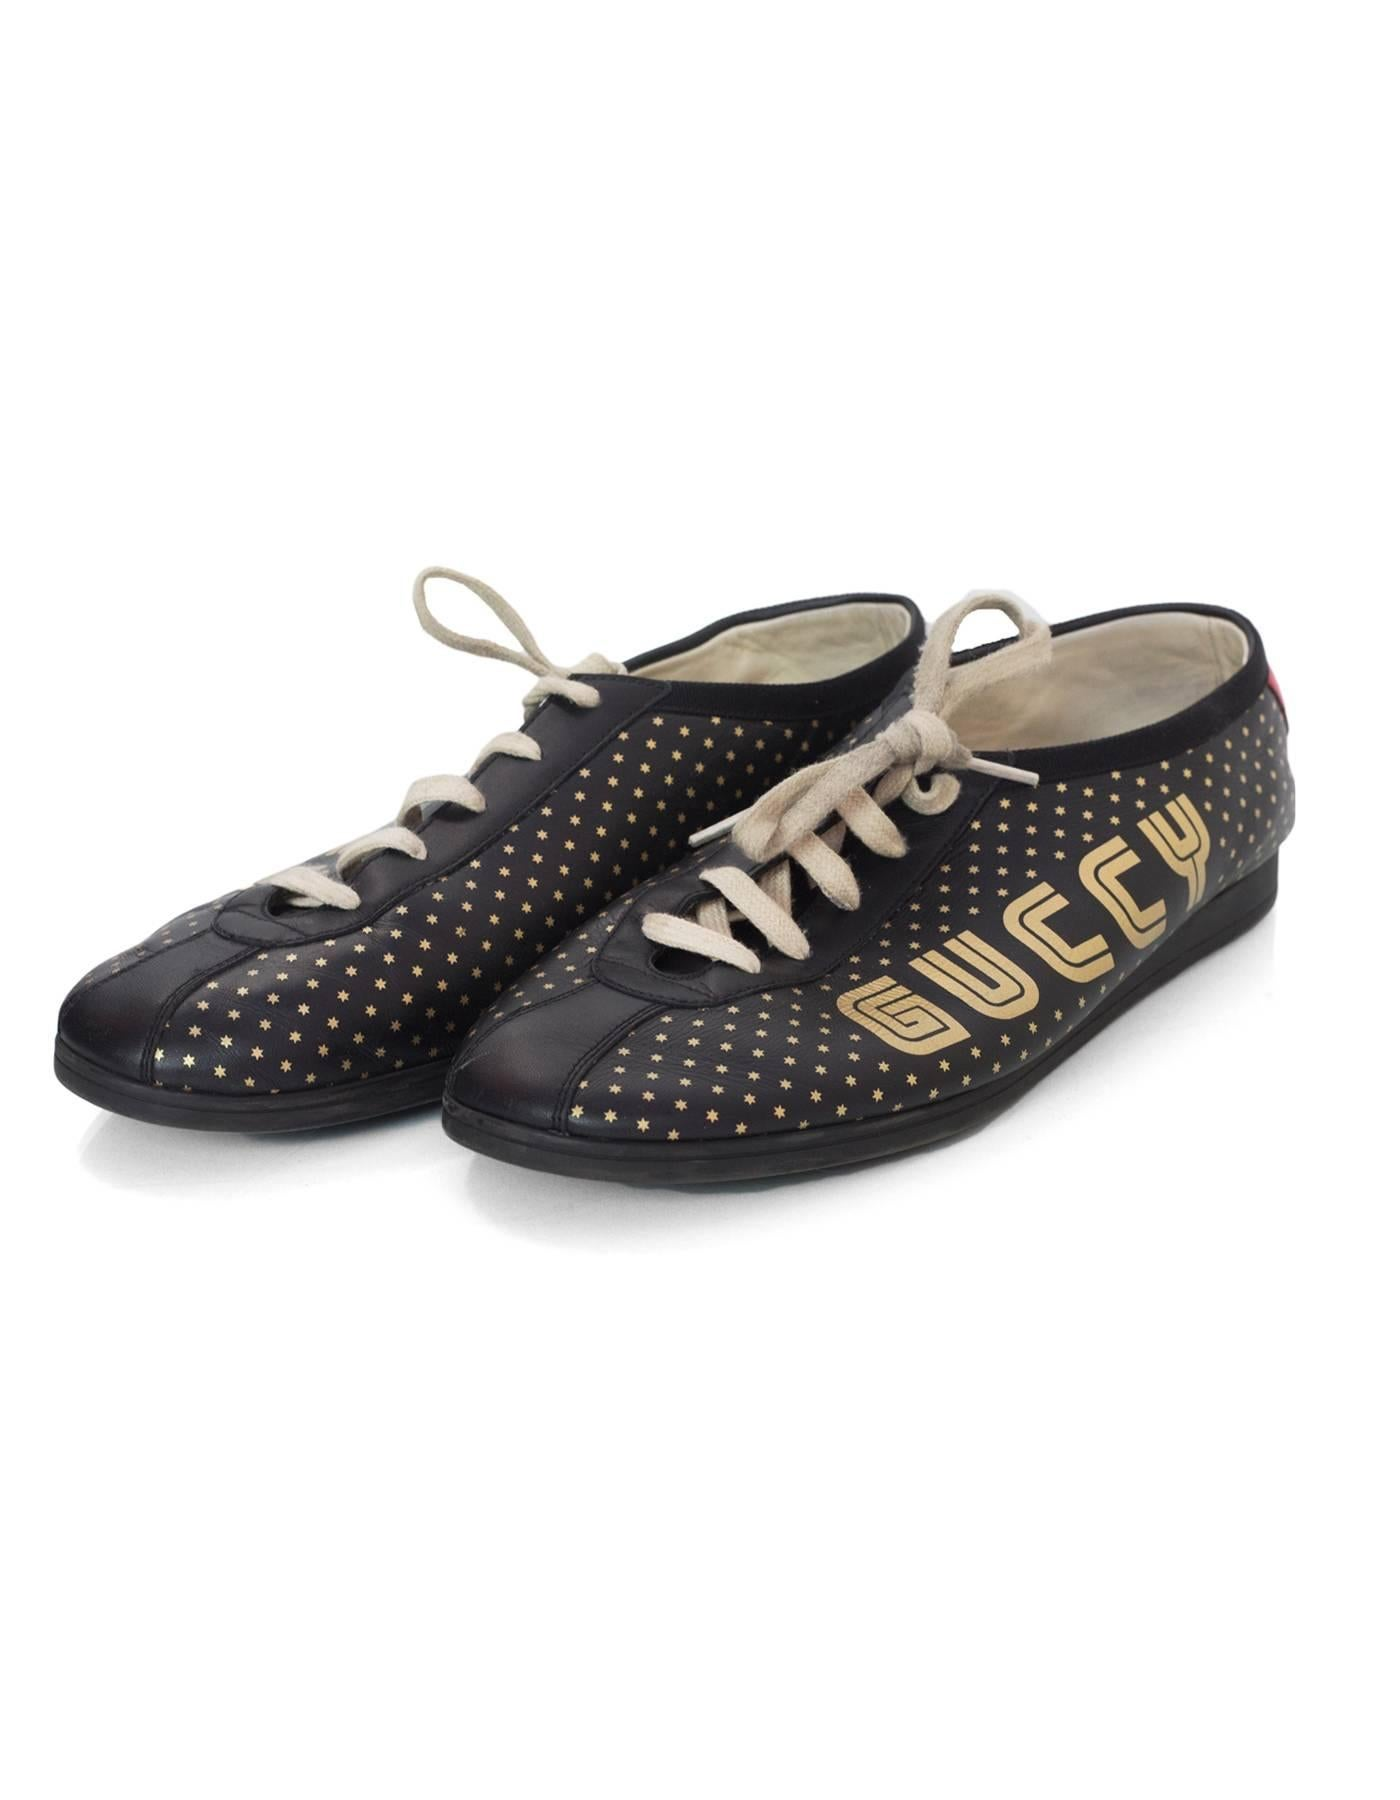 8650487ee Gucci Men's Black and Gold Falacer Guccy Sega Logo Sneakers Sz 9.5 For Sale  at 1stdibs